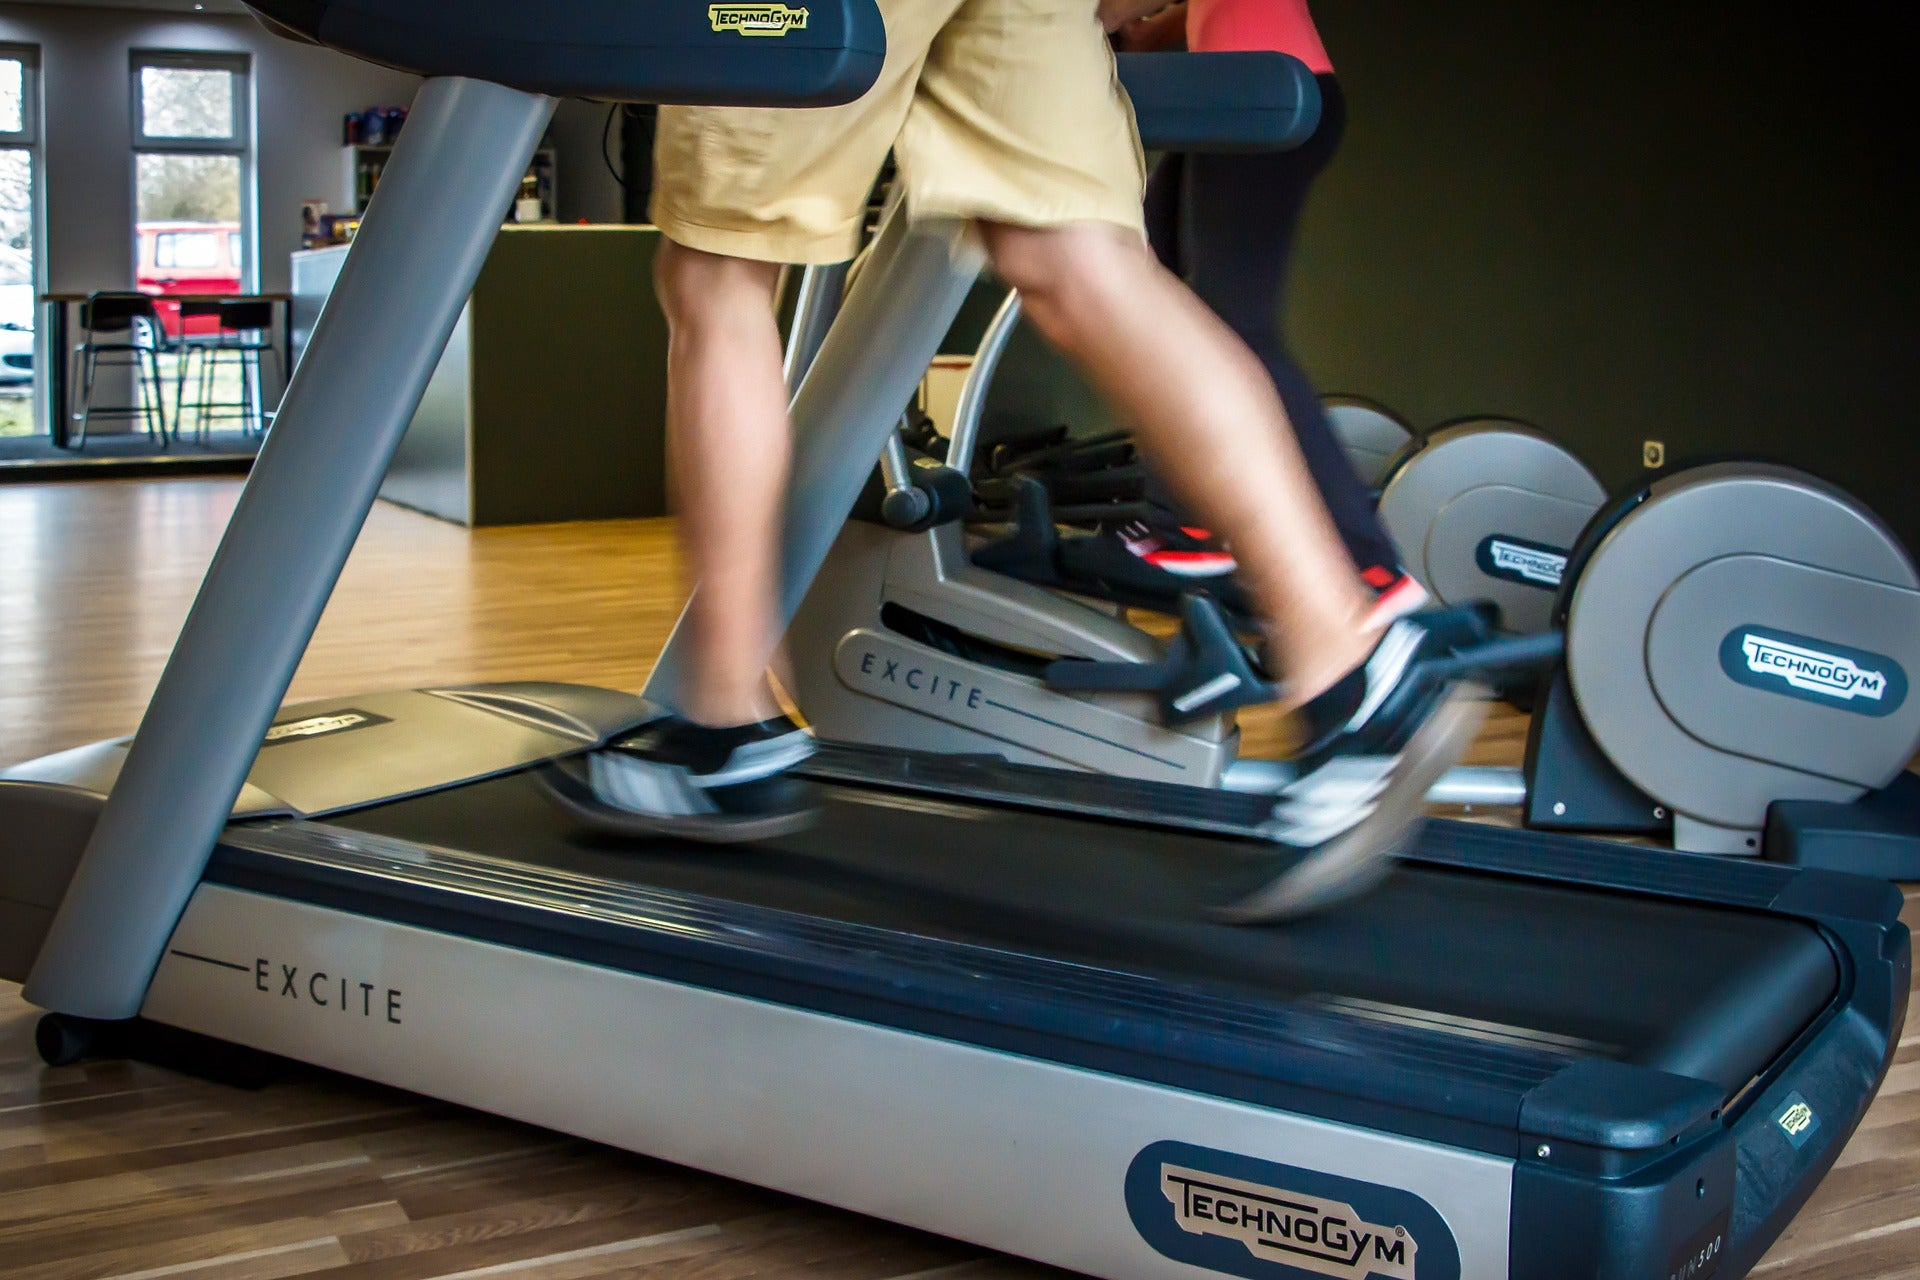 Cramming in all your exercise on the weekend is still good for your health